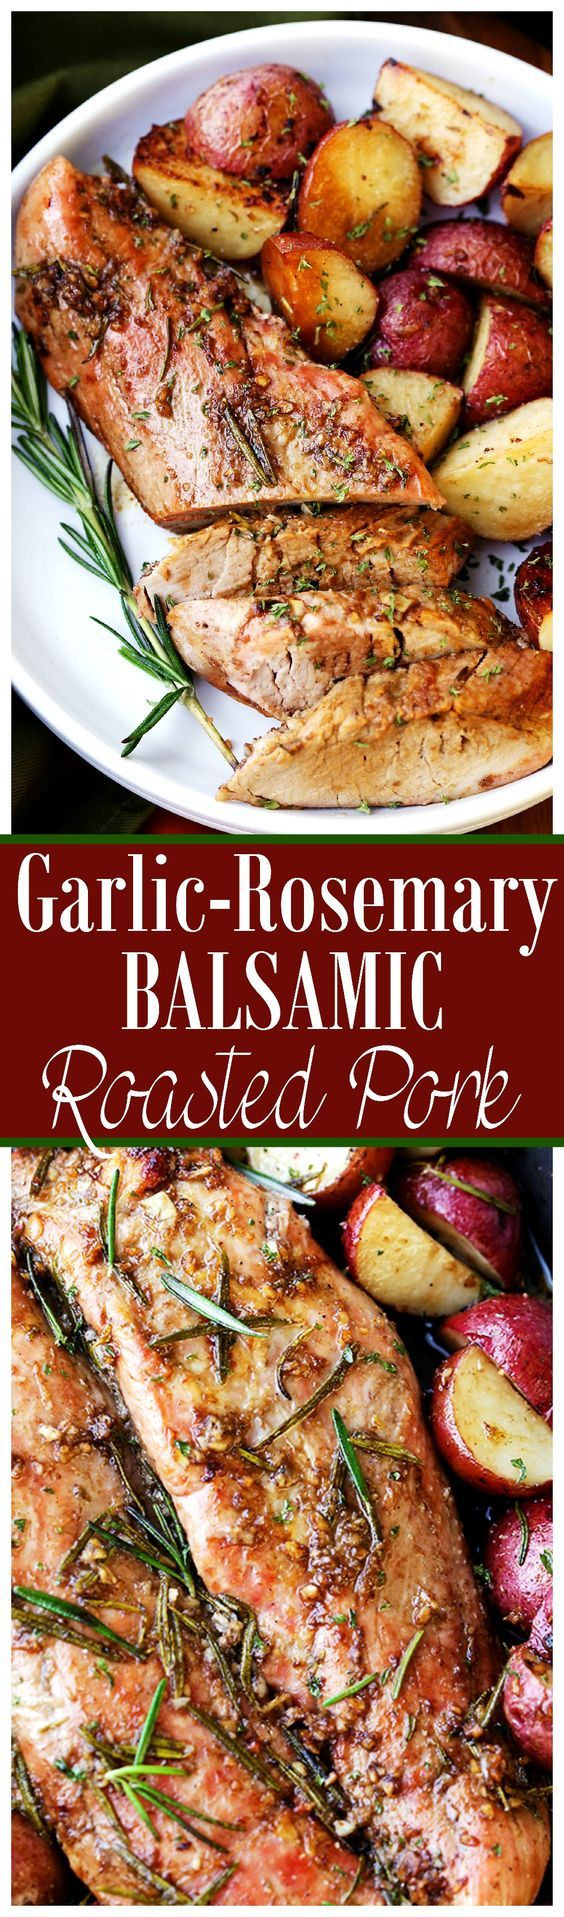 Garlic and Rosemary Balsamic Roasted Pork Loin - Easy to make, flavorful, incredibly tender pork loin rubbed with a Garlic and Rosemary Balsamic mixture makes for a crowd pleasing dinner with very little effort.: